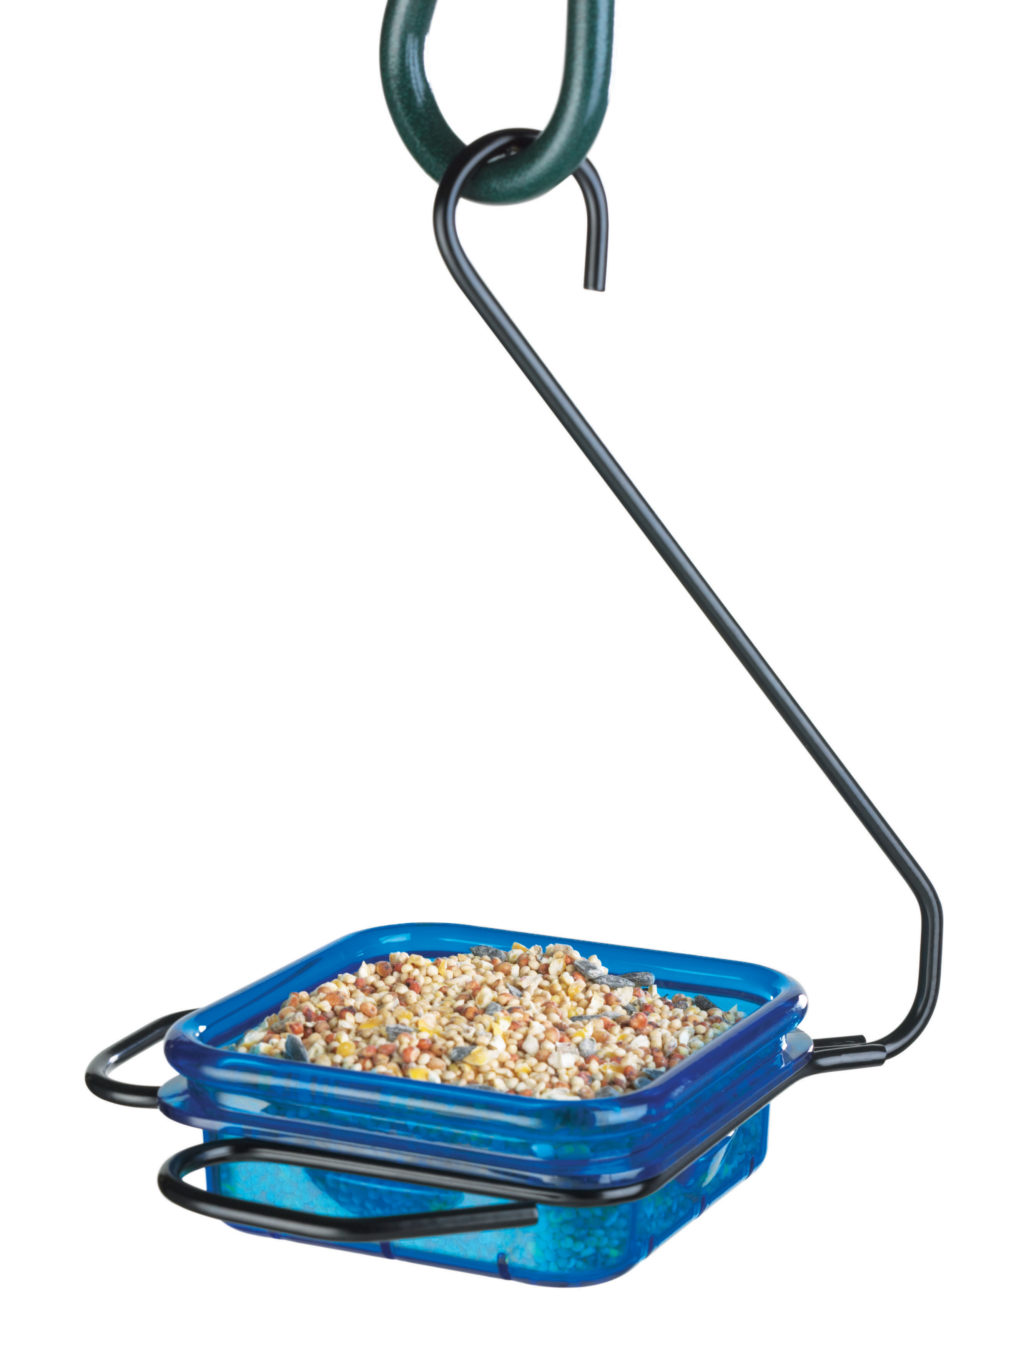 Stokes Select snacks 'n' treats - hanging dish feeder filled with bird seed